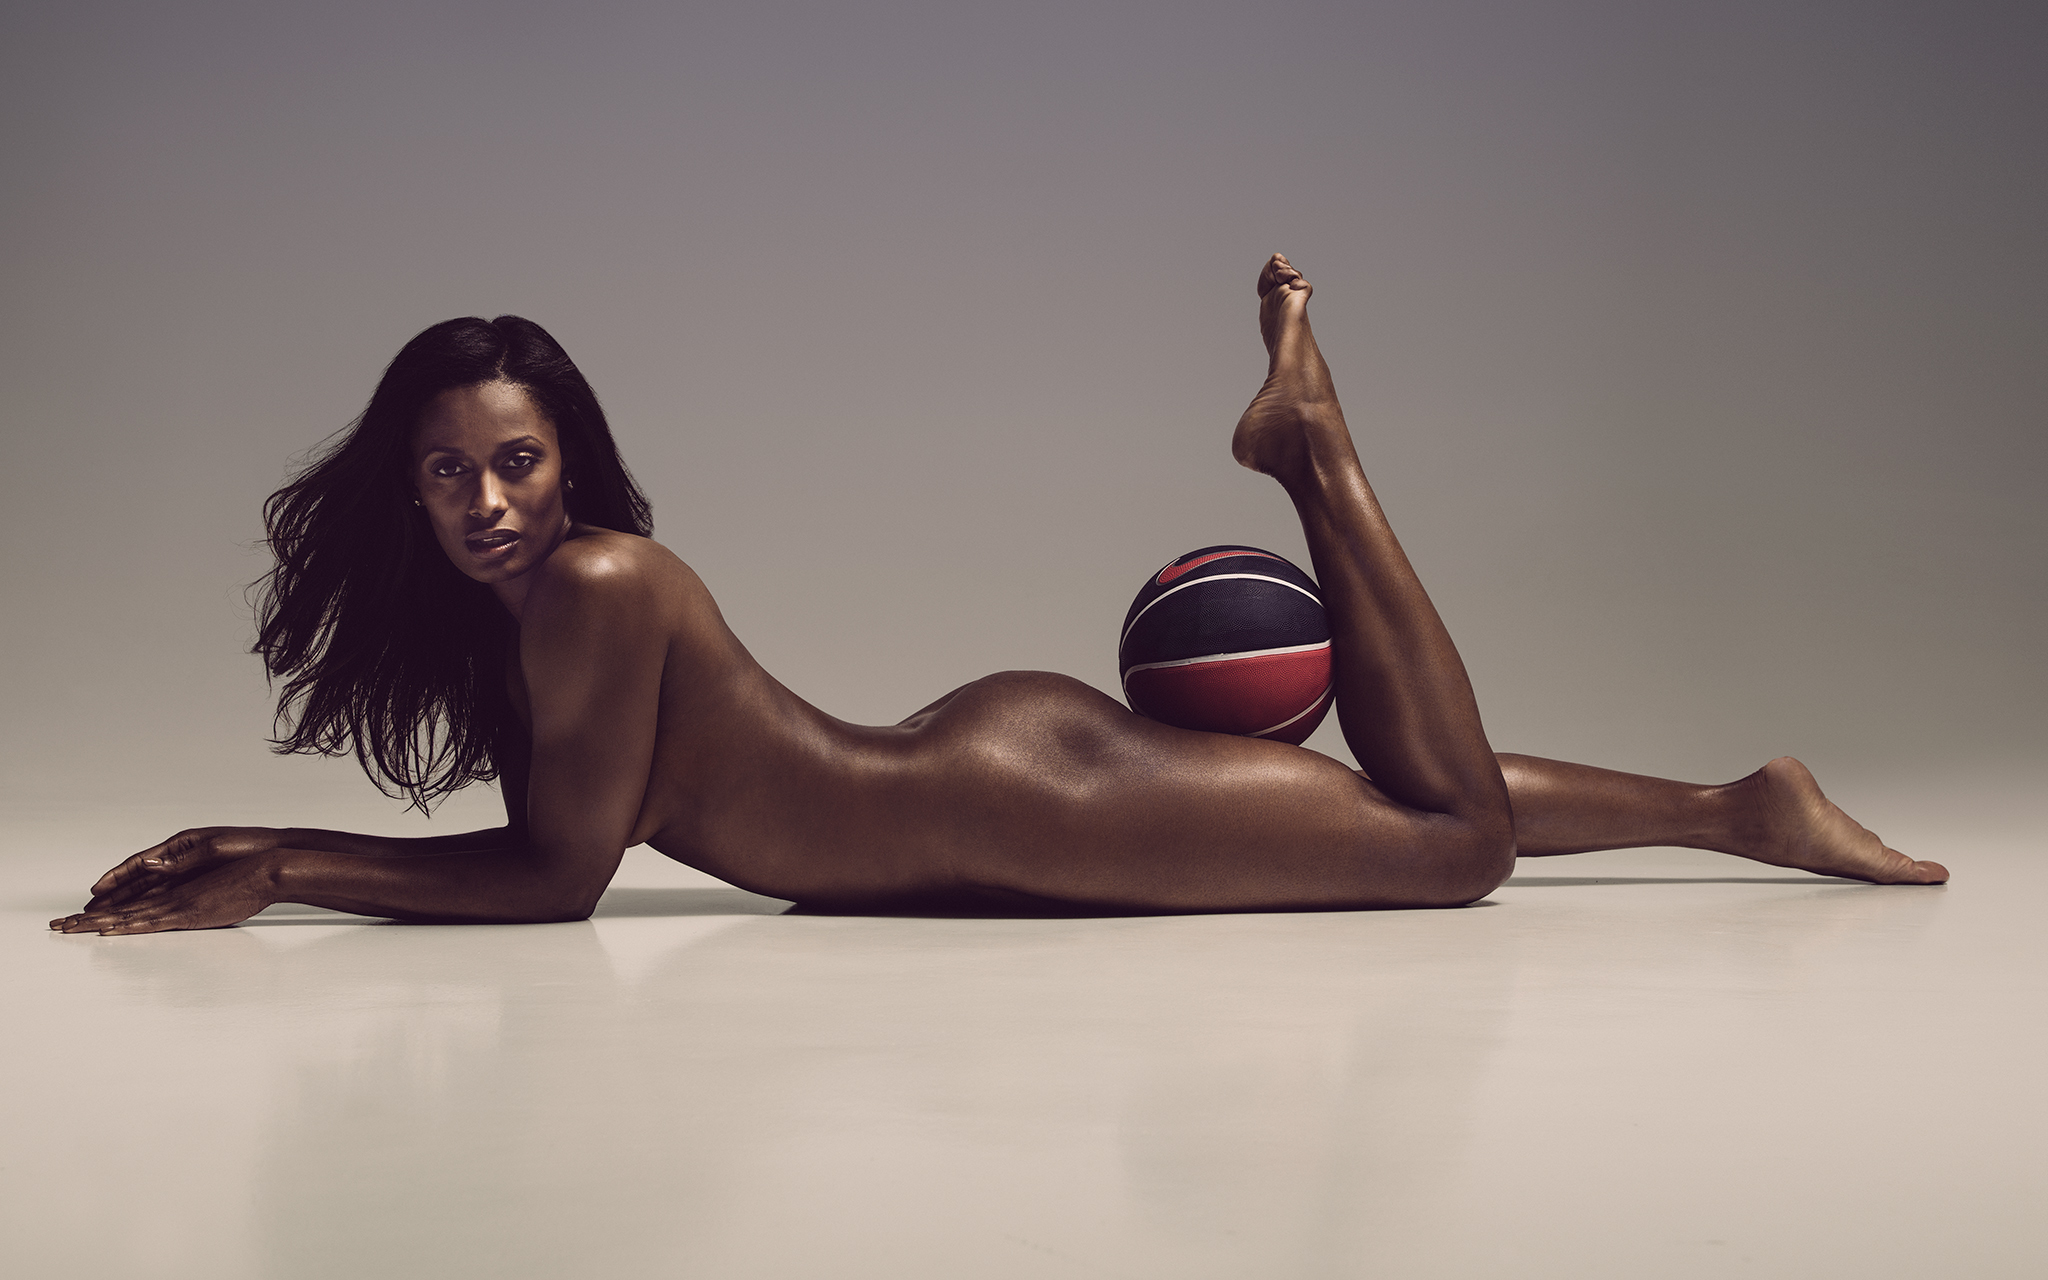 Athletic naked women